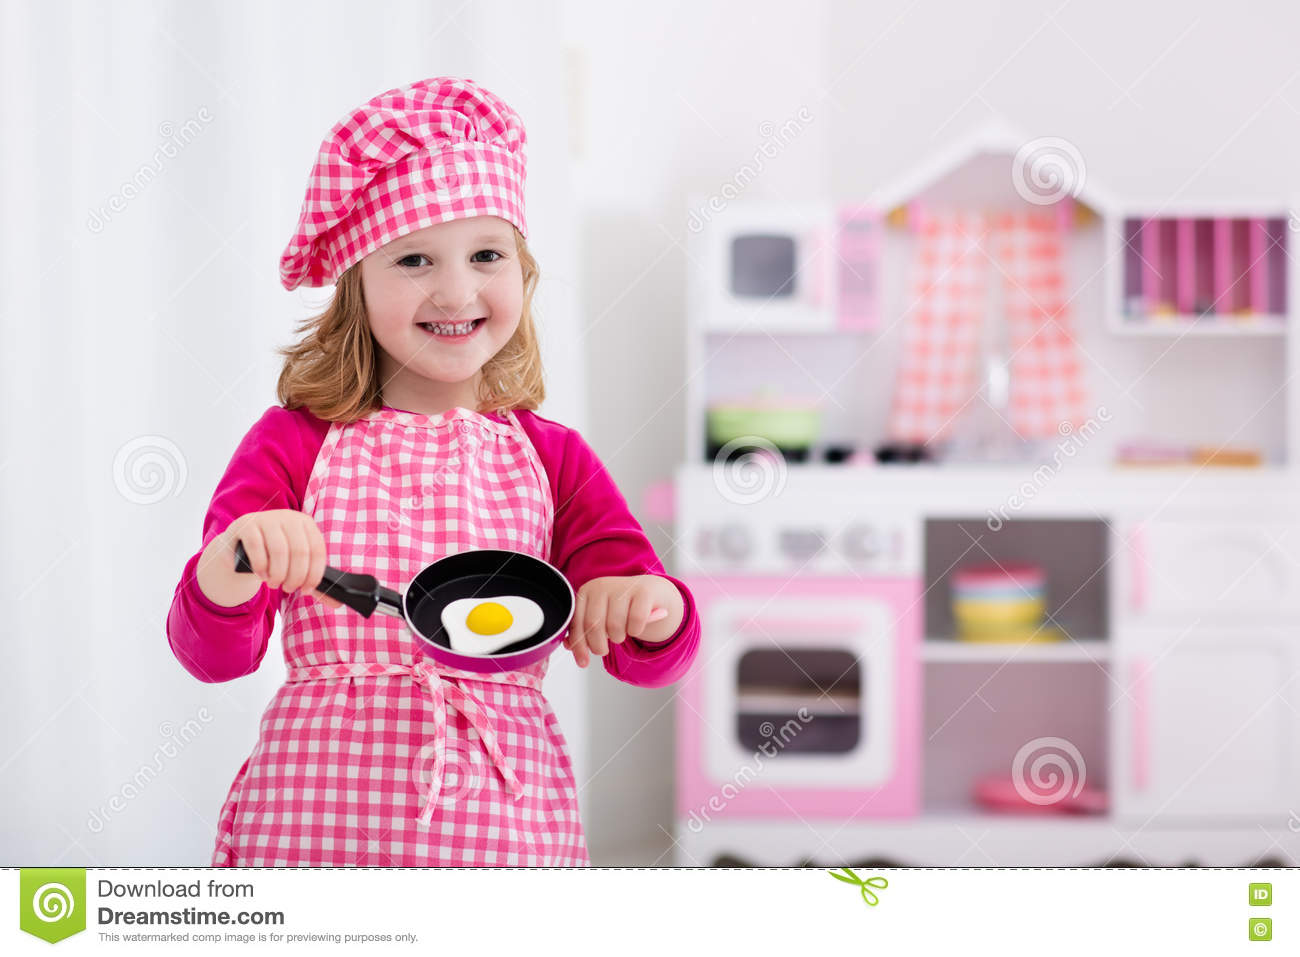 Little Girl Toys : Little girl playing with toy kitchen stock image